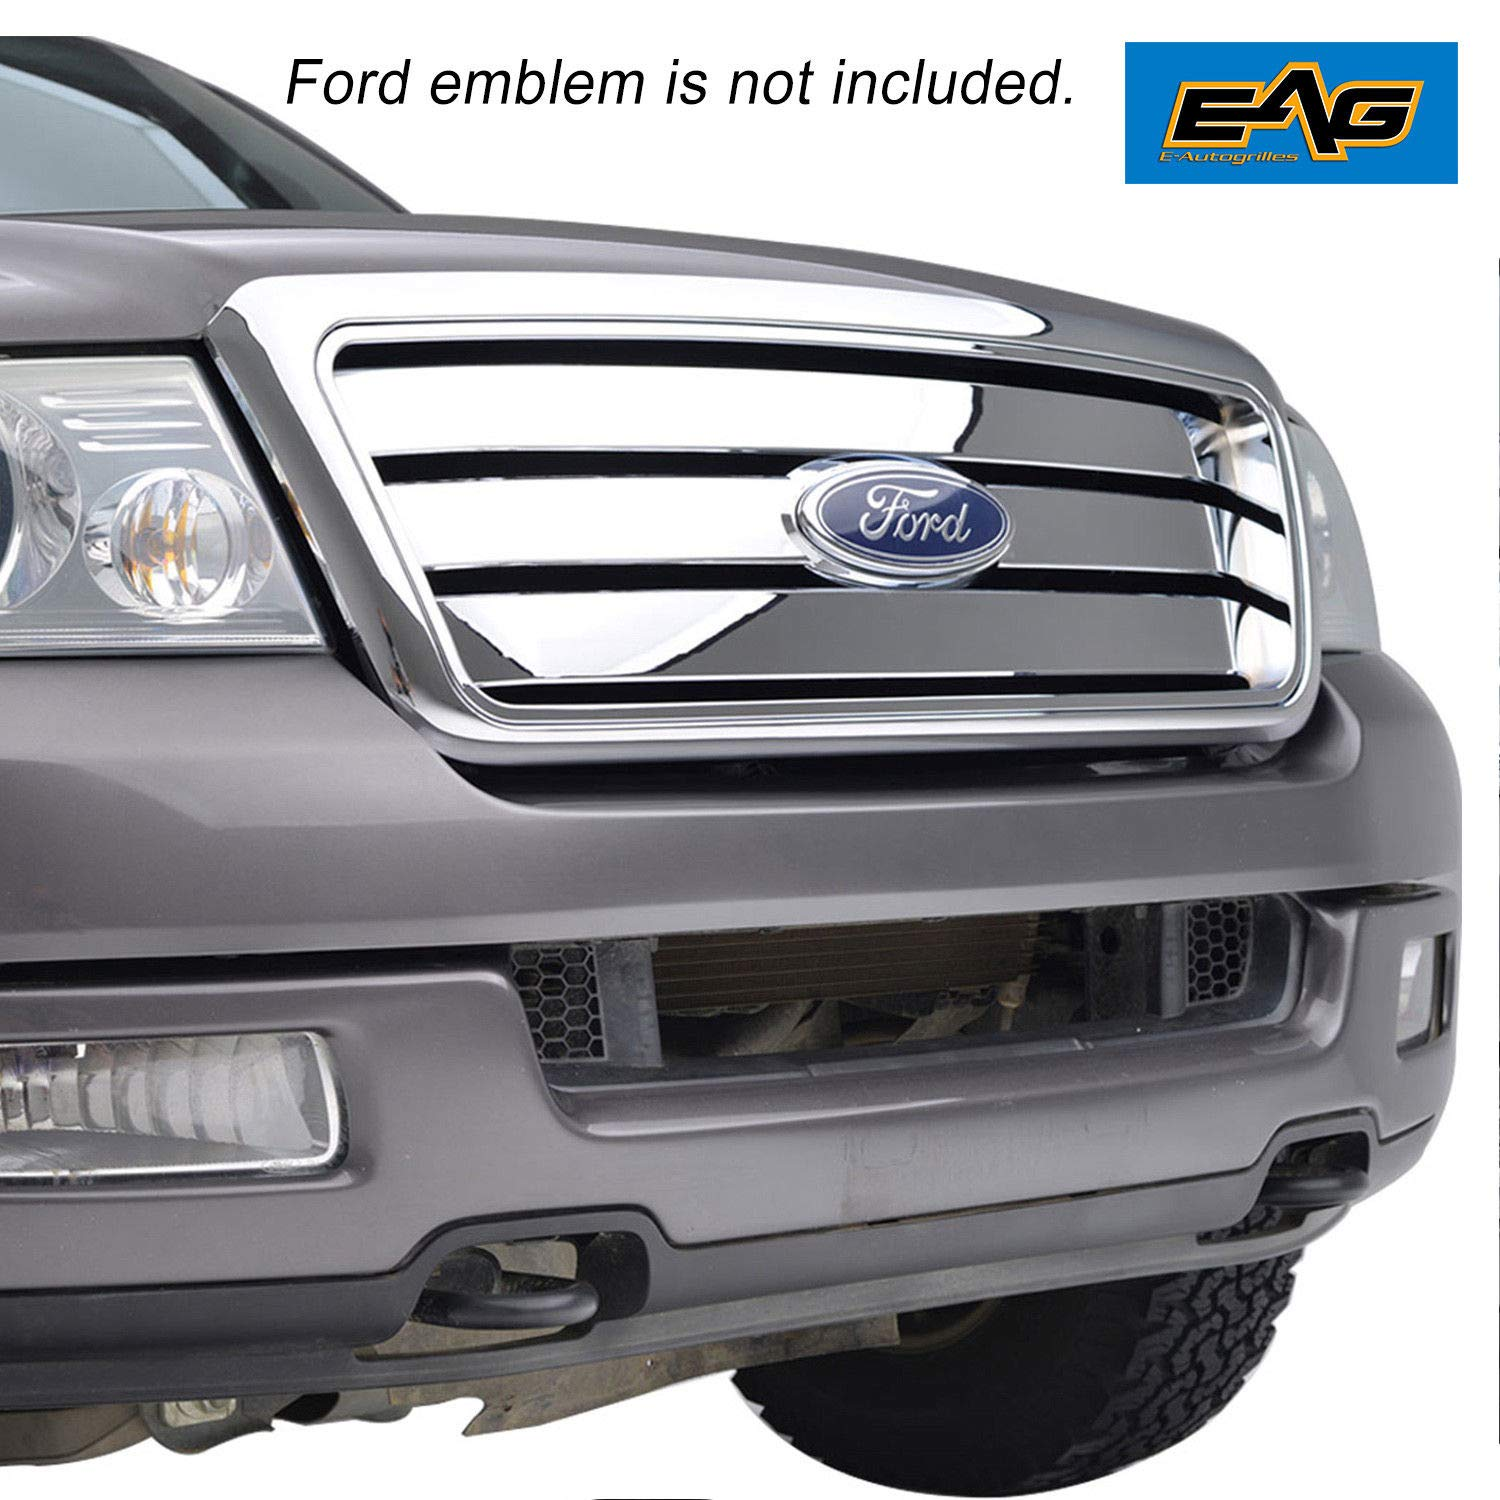 EAG Replacement Grille Upper Front Hood Grill Fit for 2004-2008 Ford F-150